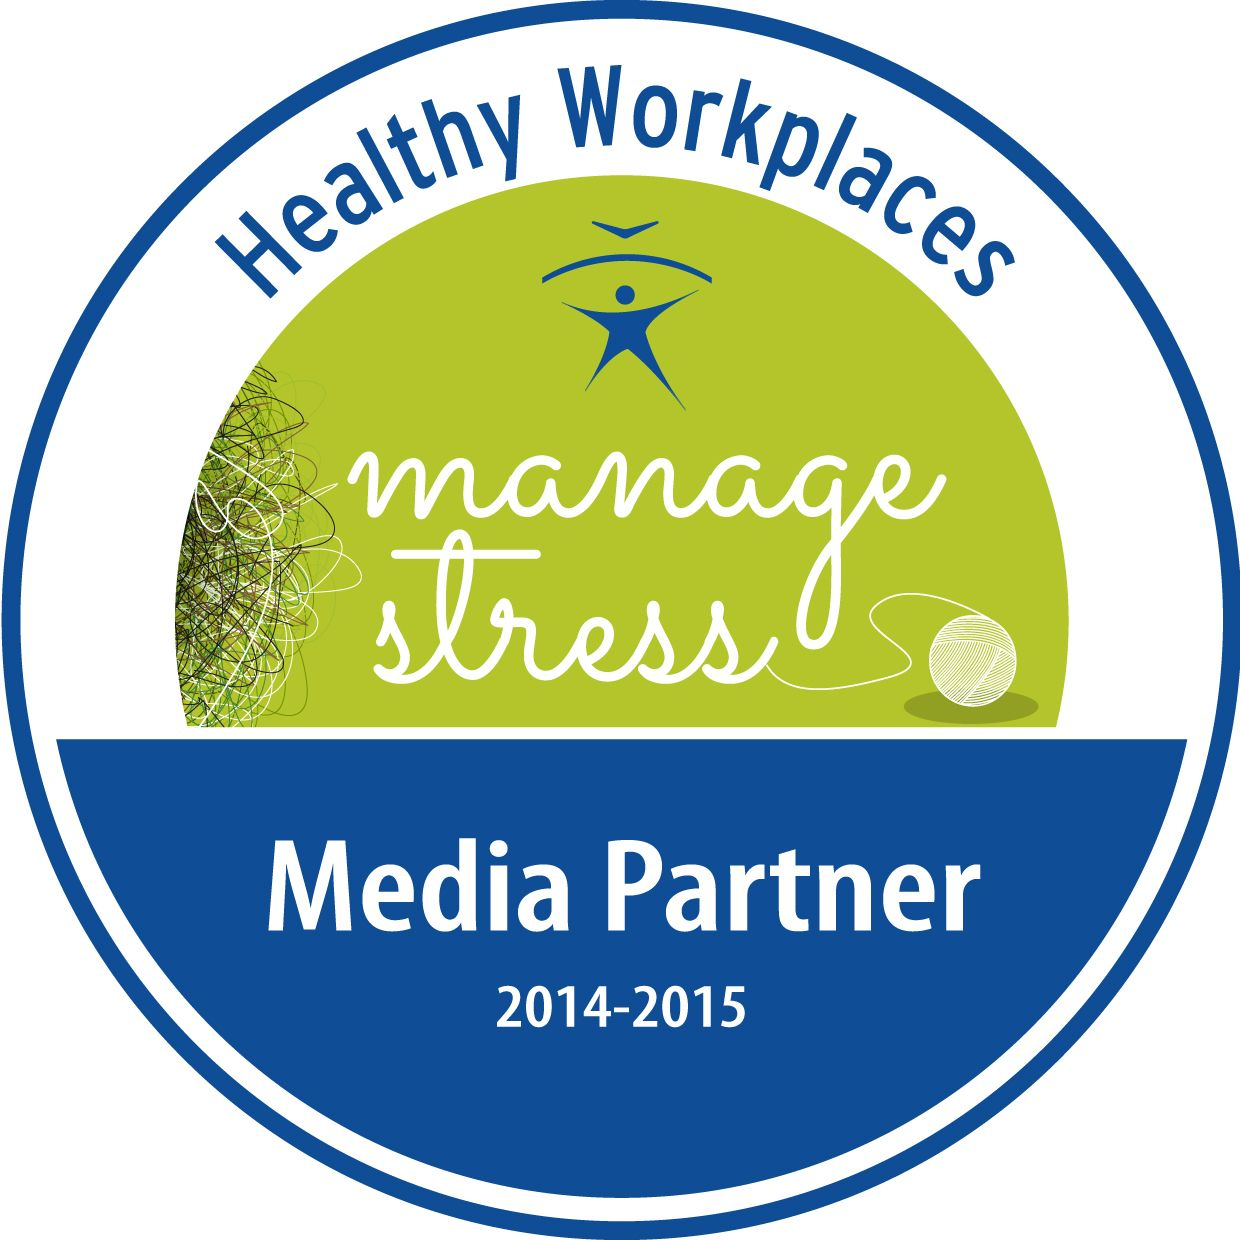 PPE is a proud partner of the Healthy Workplaces Manage